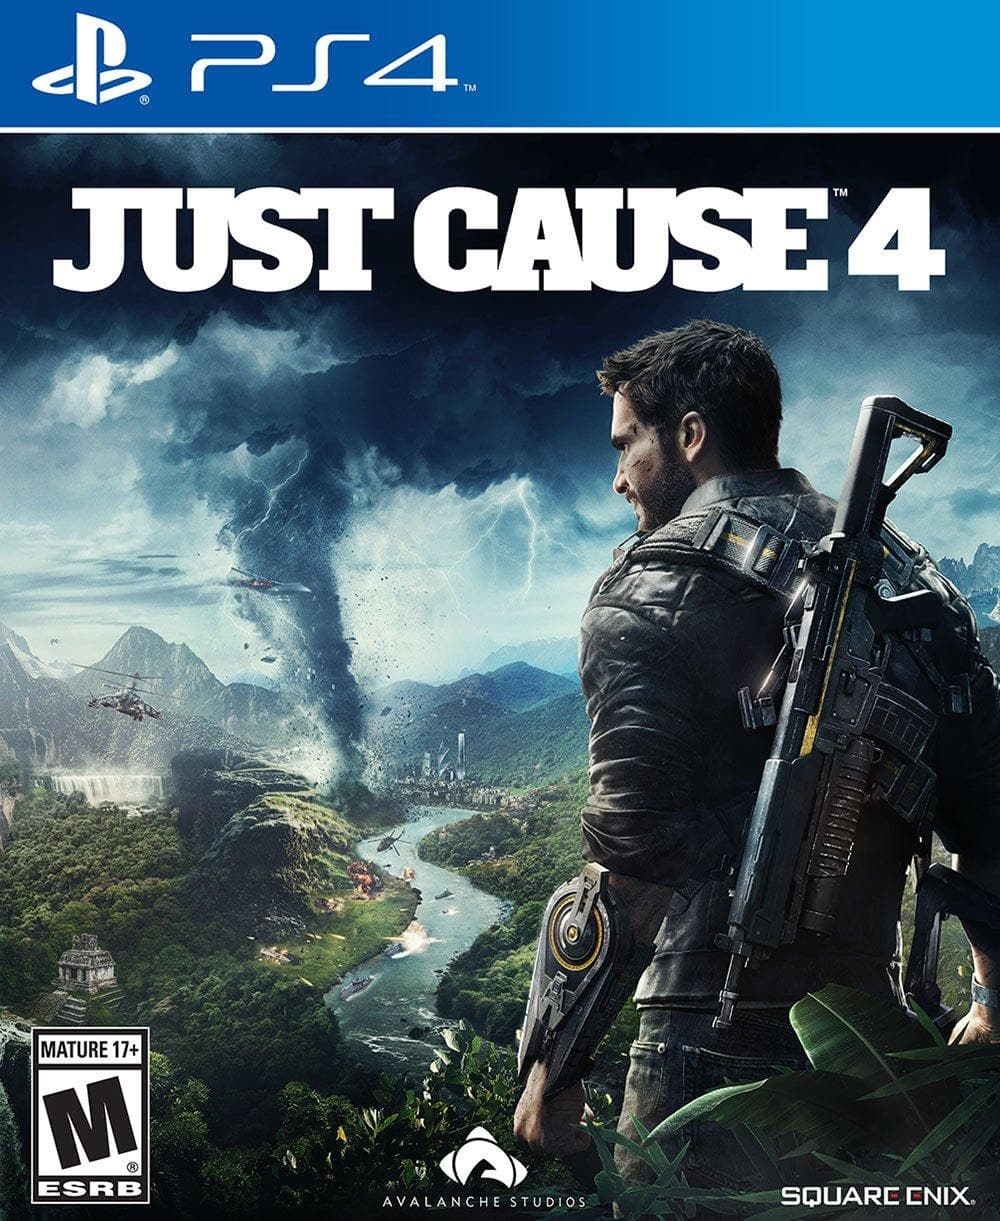 Just Cause 4 (PS4 and Xbox One) $9.99 Pre-Owned at Gamestop